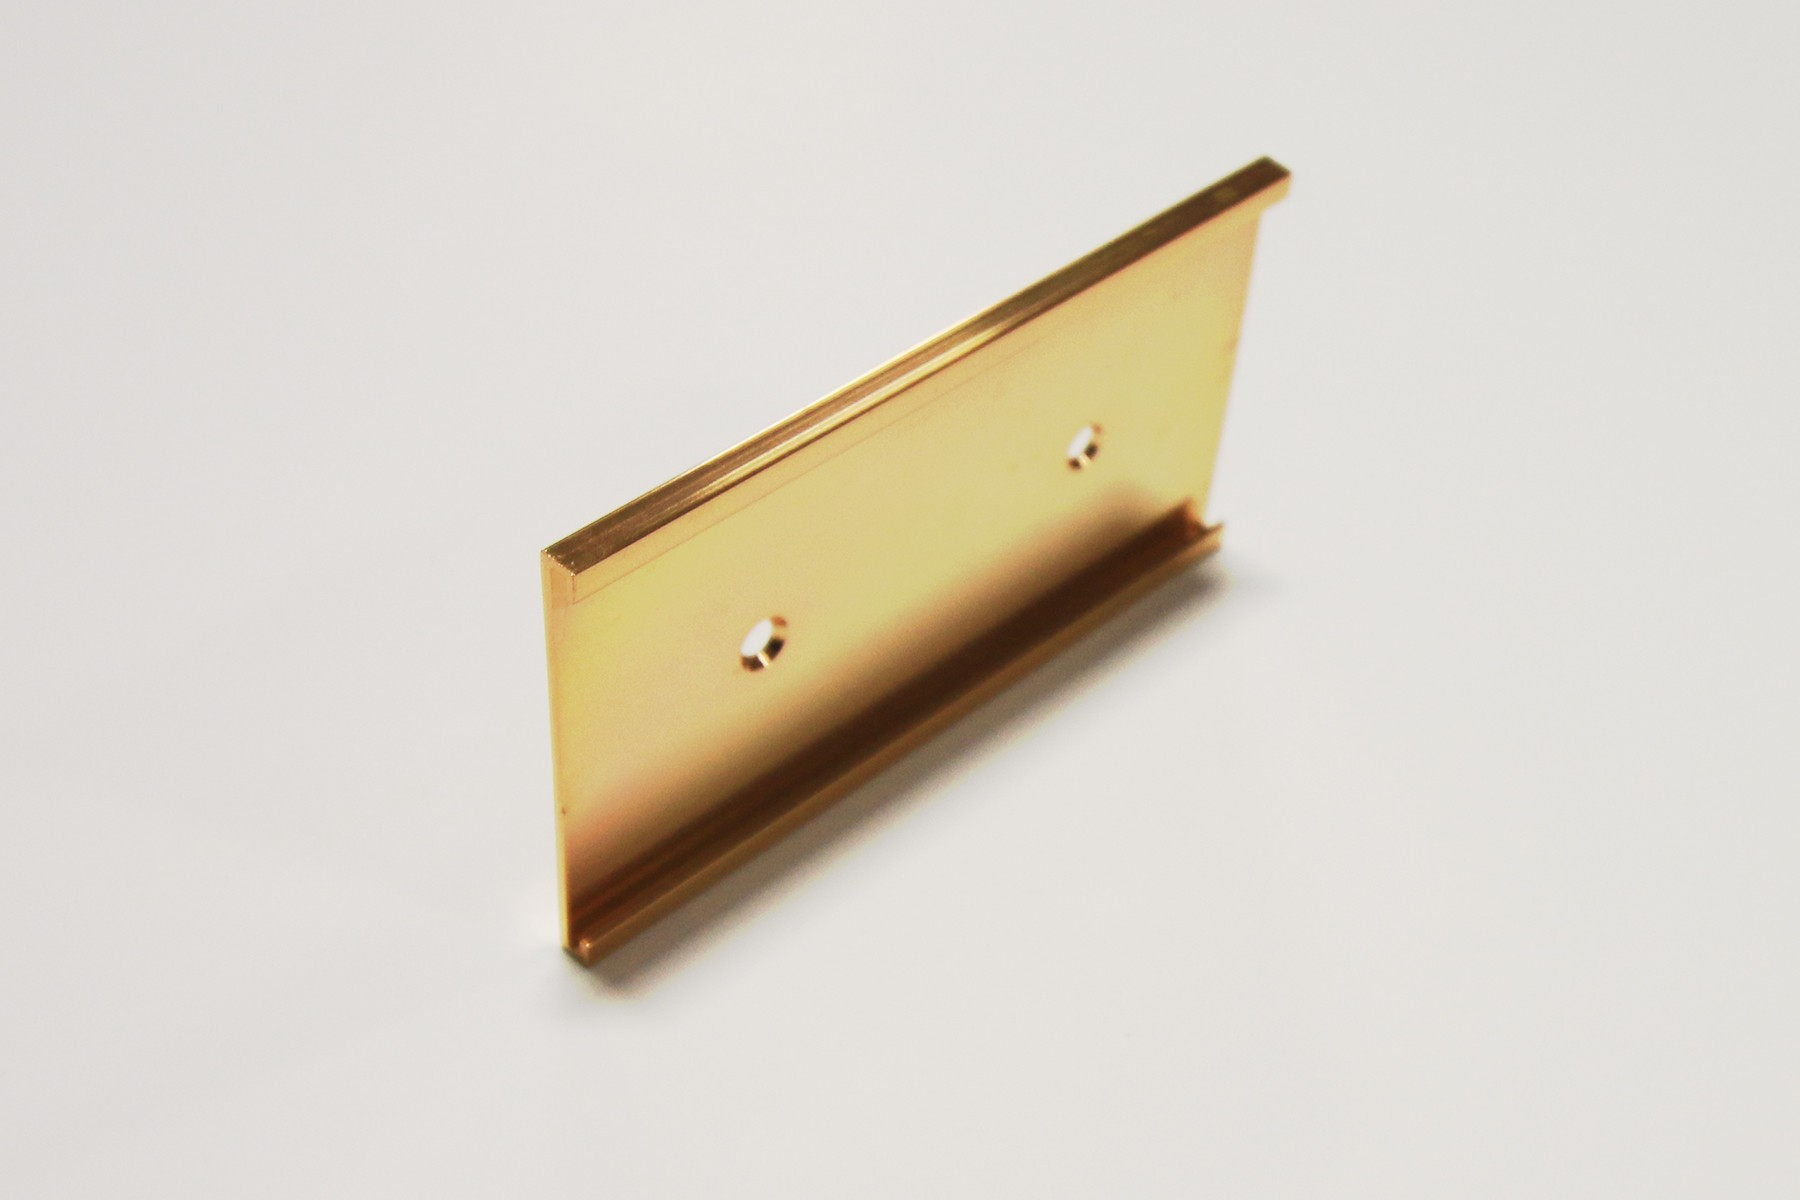 2 x 12 Wall Holder, Gold -150-